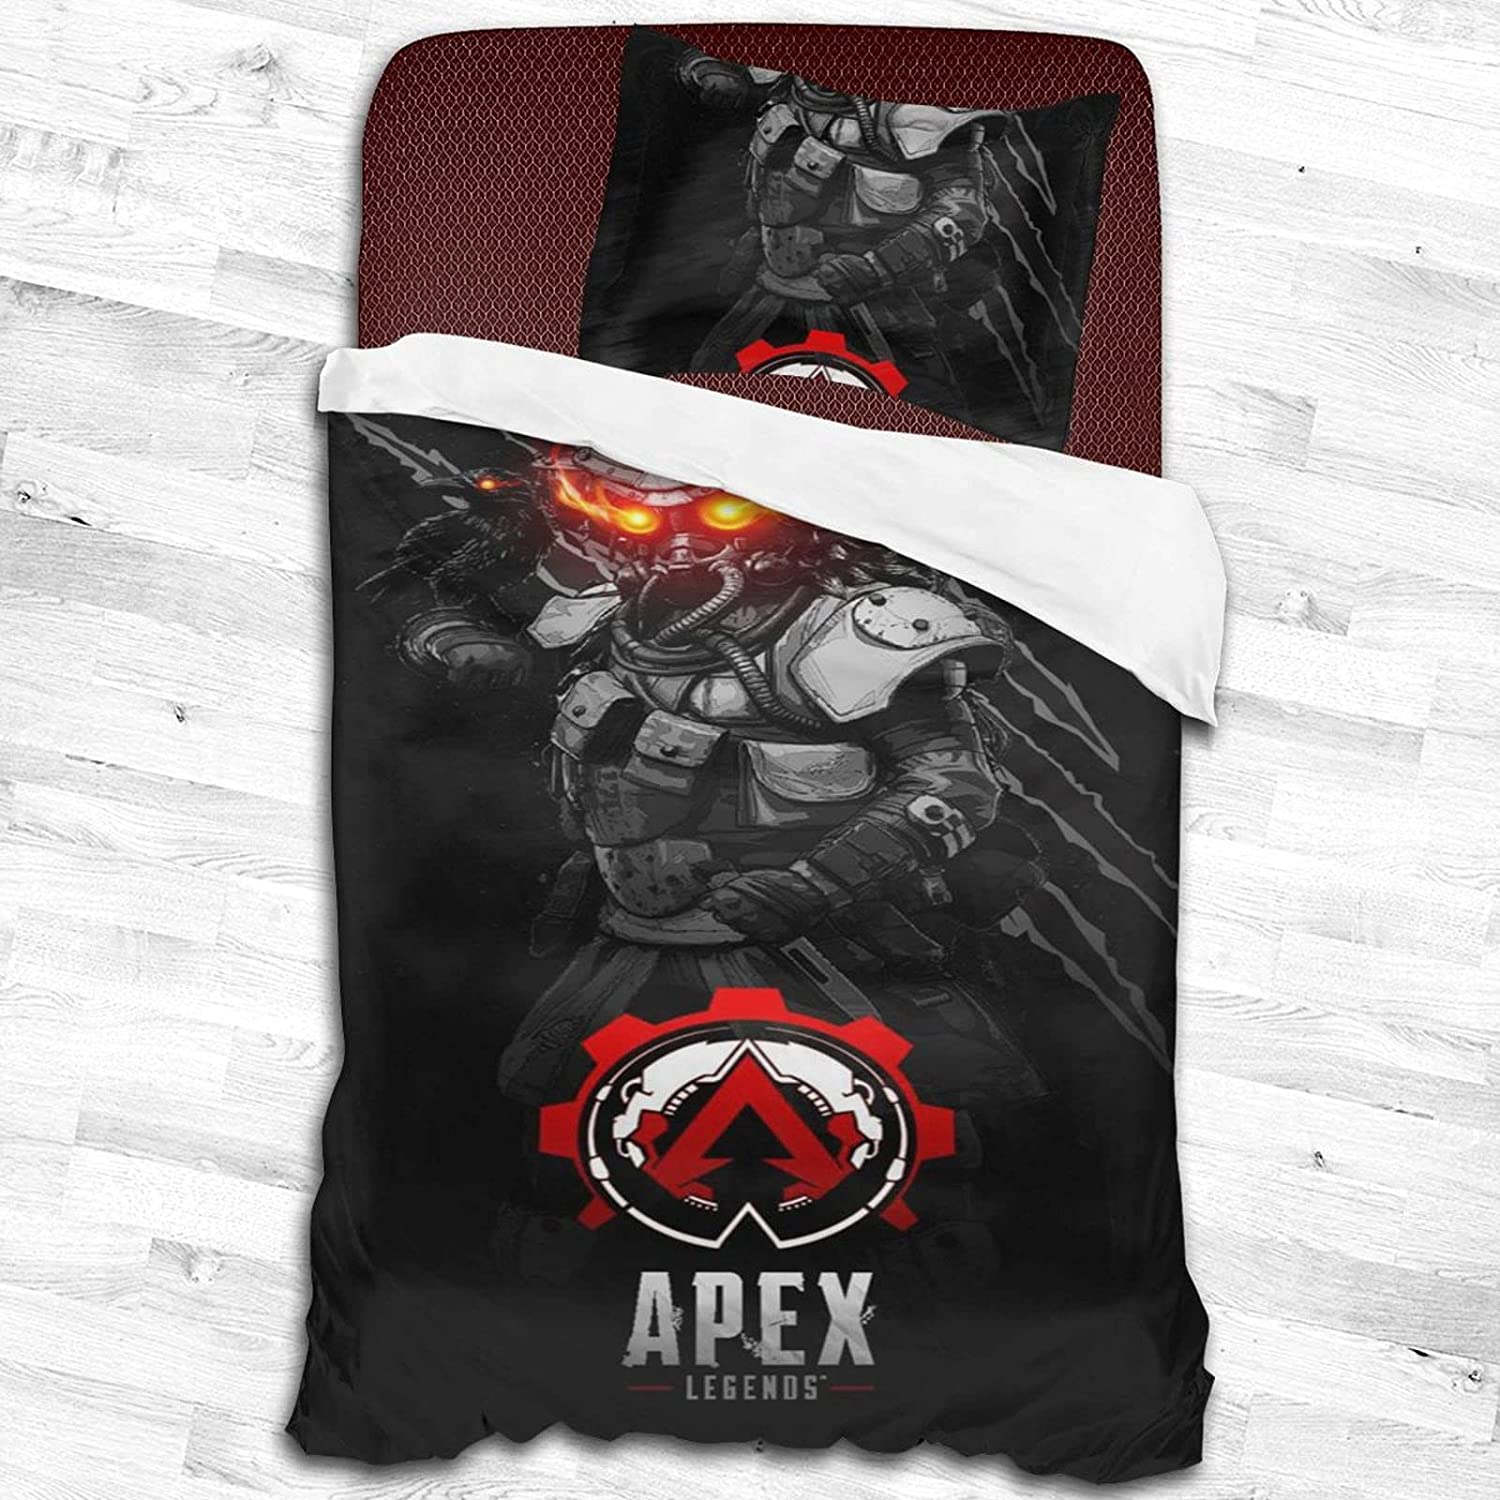 Apex-Bloodhound Soft 2-Piece Bedding Online limited product Set Sheets Limited price Cover Bed Quilt